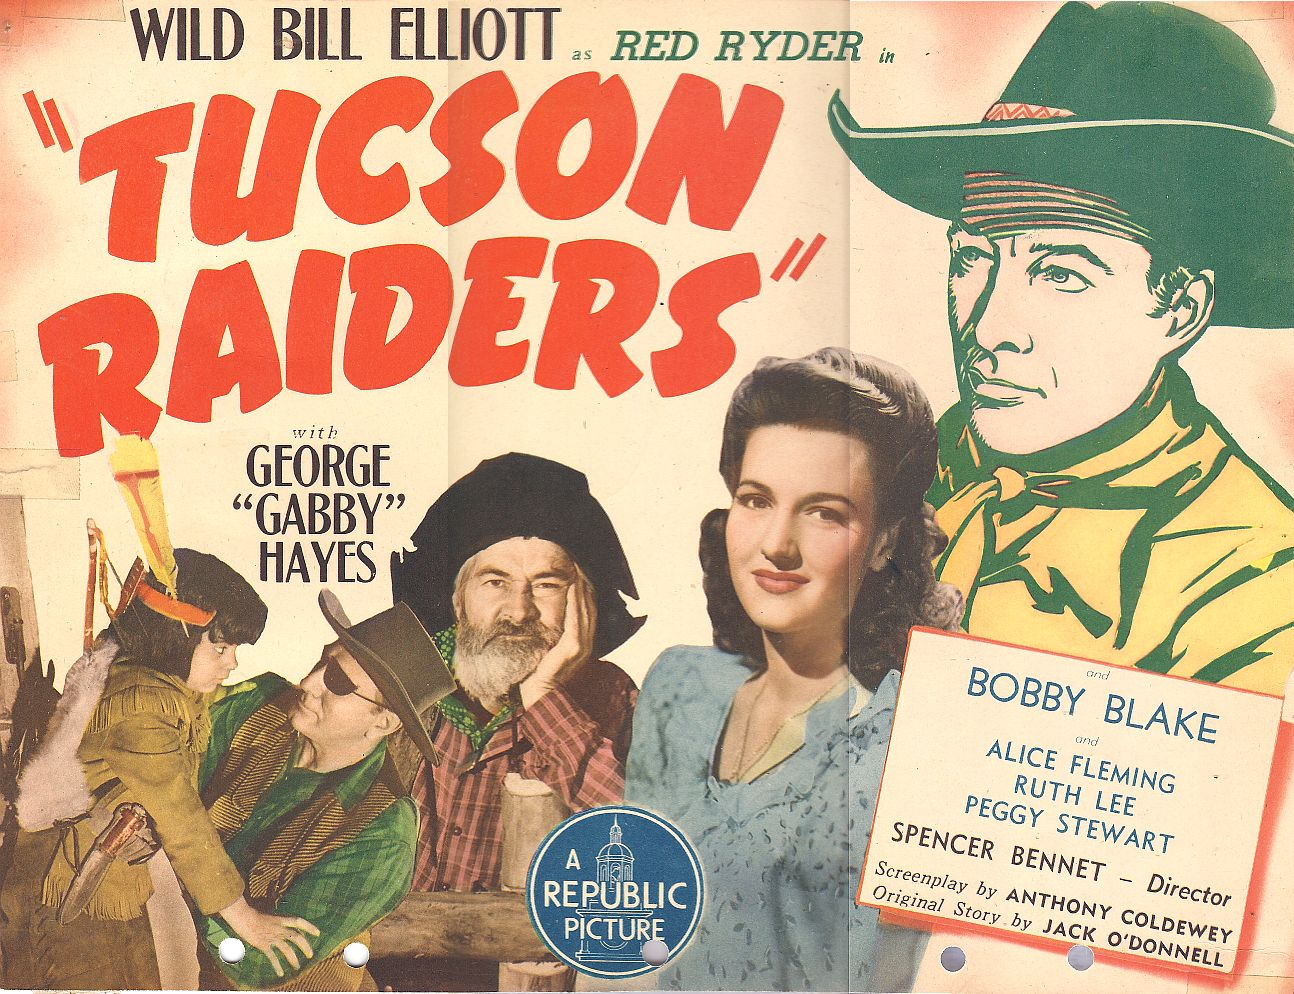 Robert Blake, Bill Elliott, Bud Geary, George 'Gabby' Hayes, and Peggy Stewart in Tucson Raiders (1944)